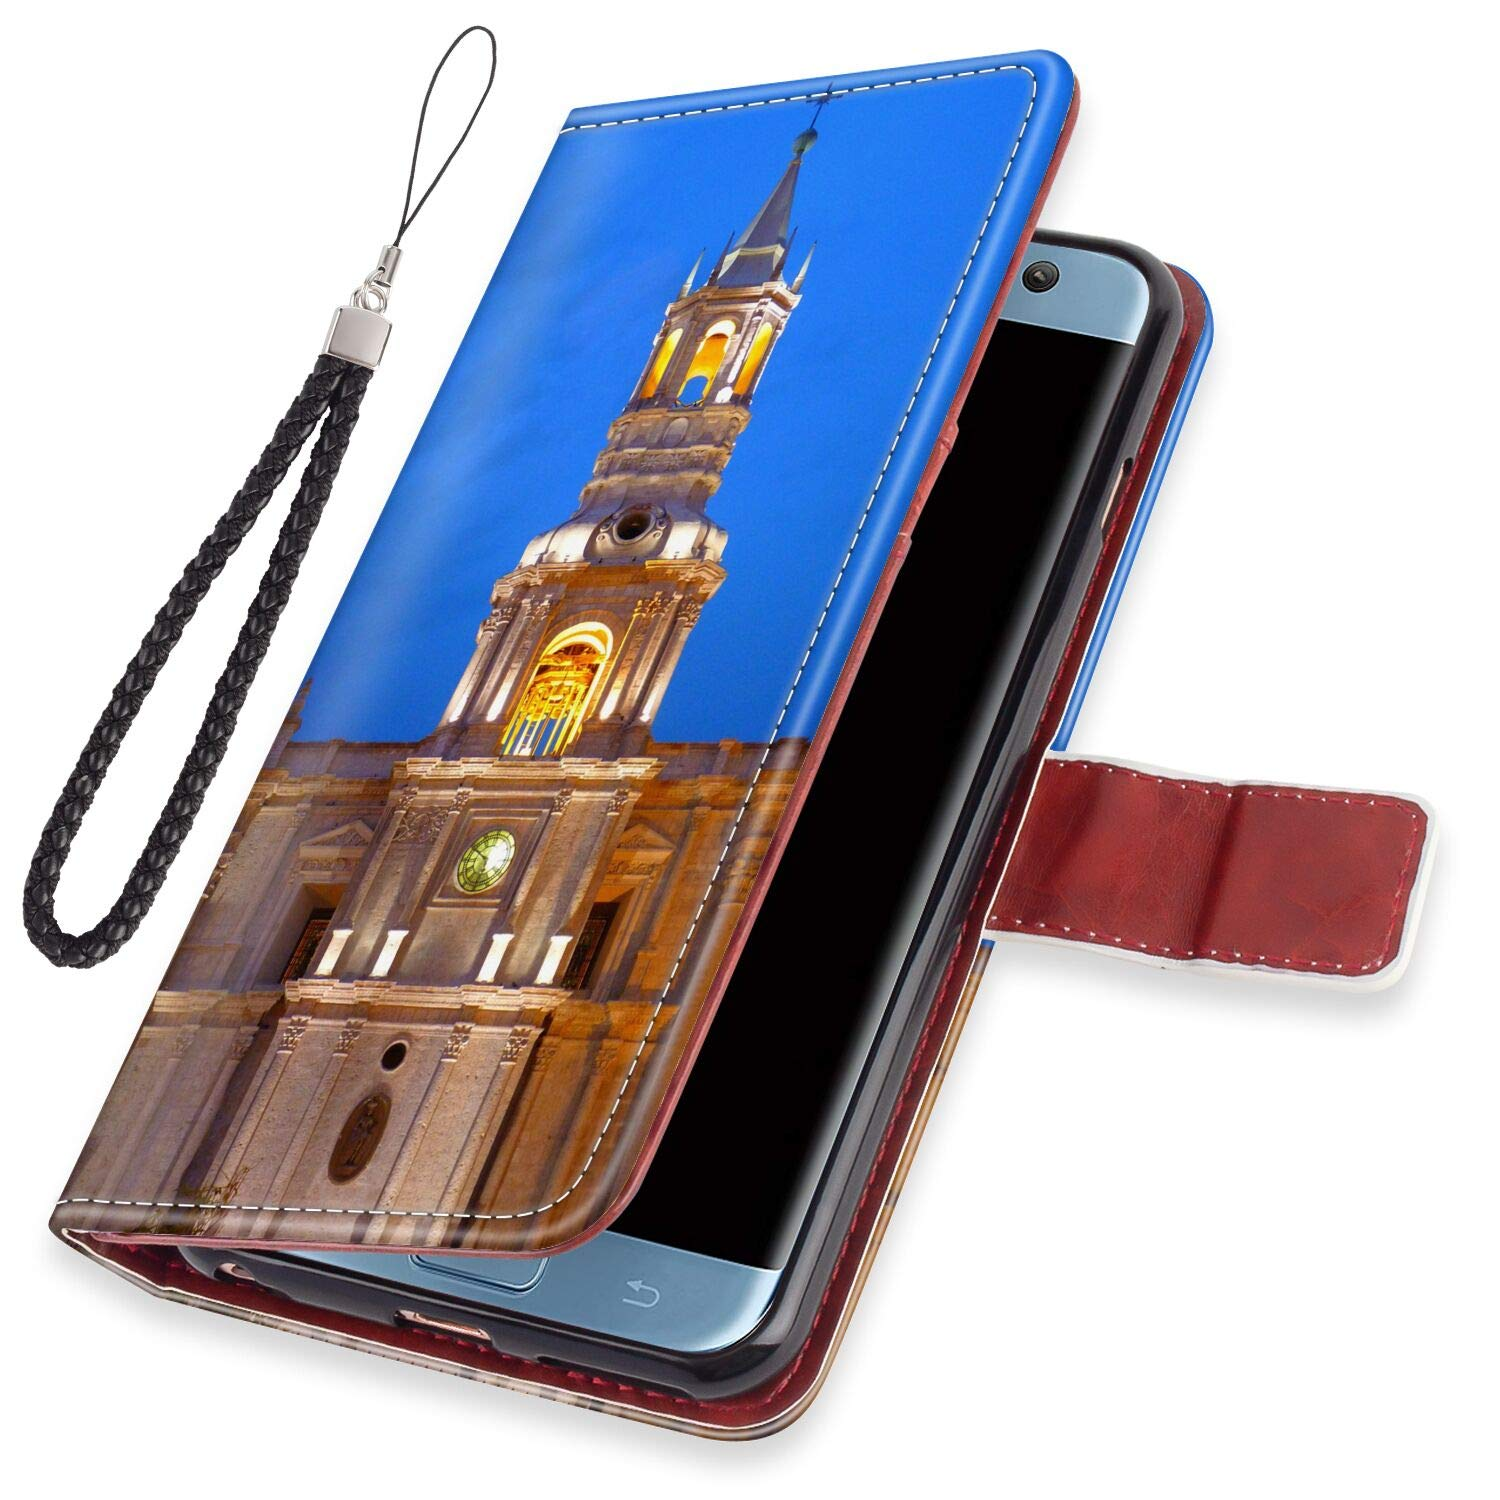 Amazon.com: Wallet Leather Card Holder Case Fit for Galaxy ...